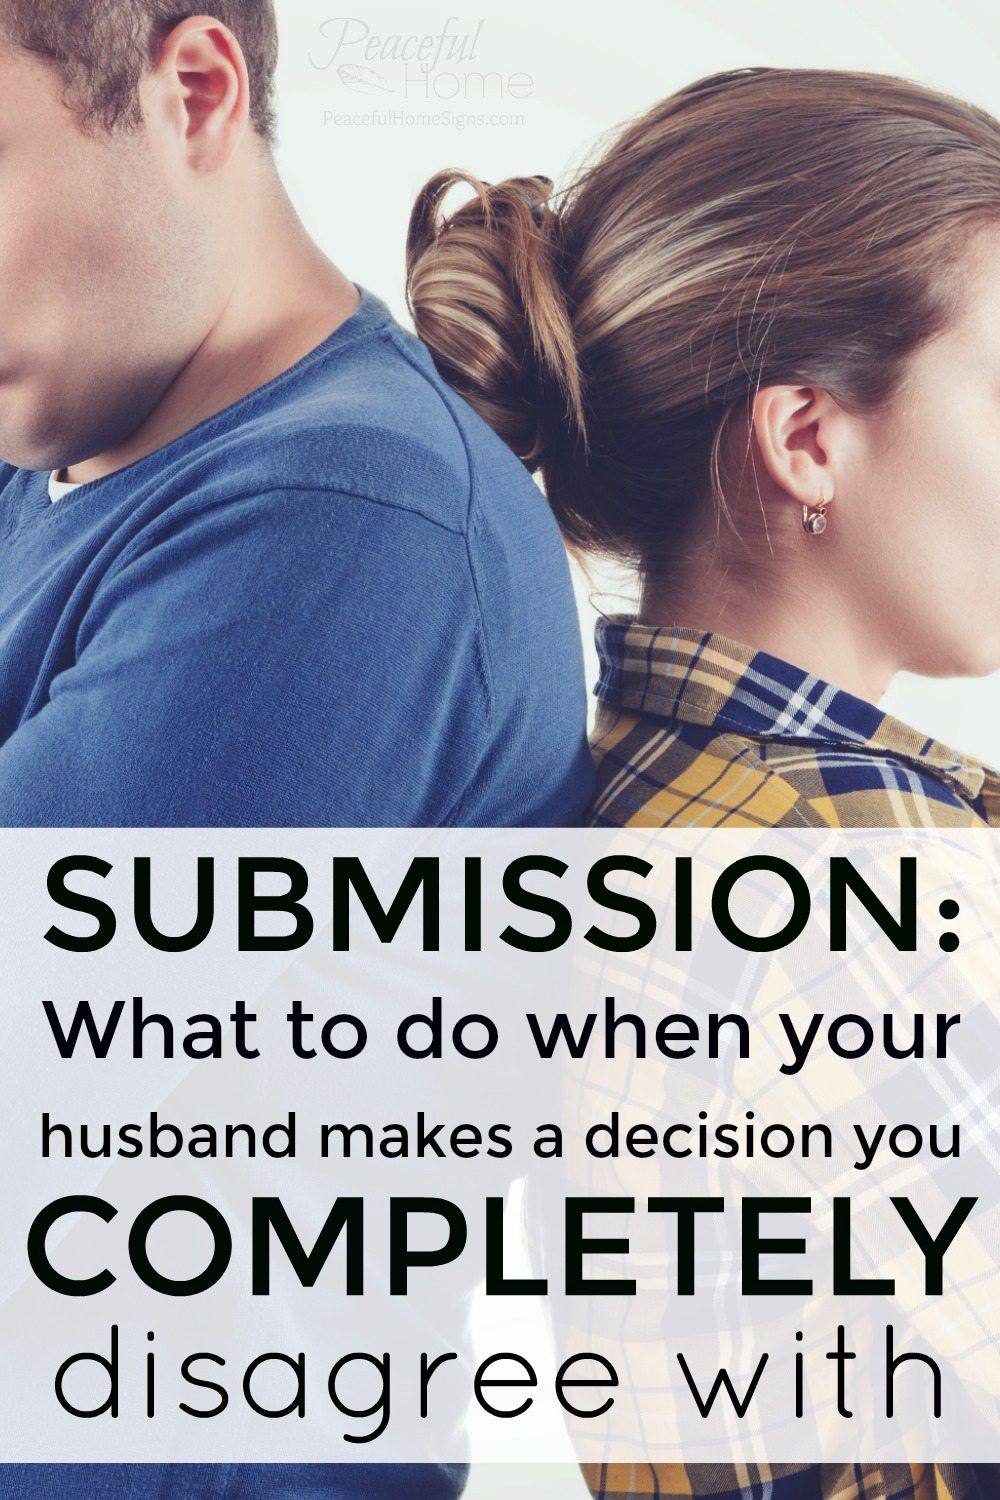 Submission: What to do when your husband makes a decision you completely disagree with | Christian Marriage | Bible Based Marriage | Submission in marriage | Christian Counseling | Biblical Marriage | Honor and Respect Your Husband